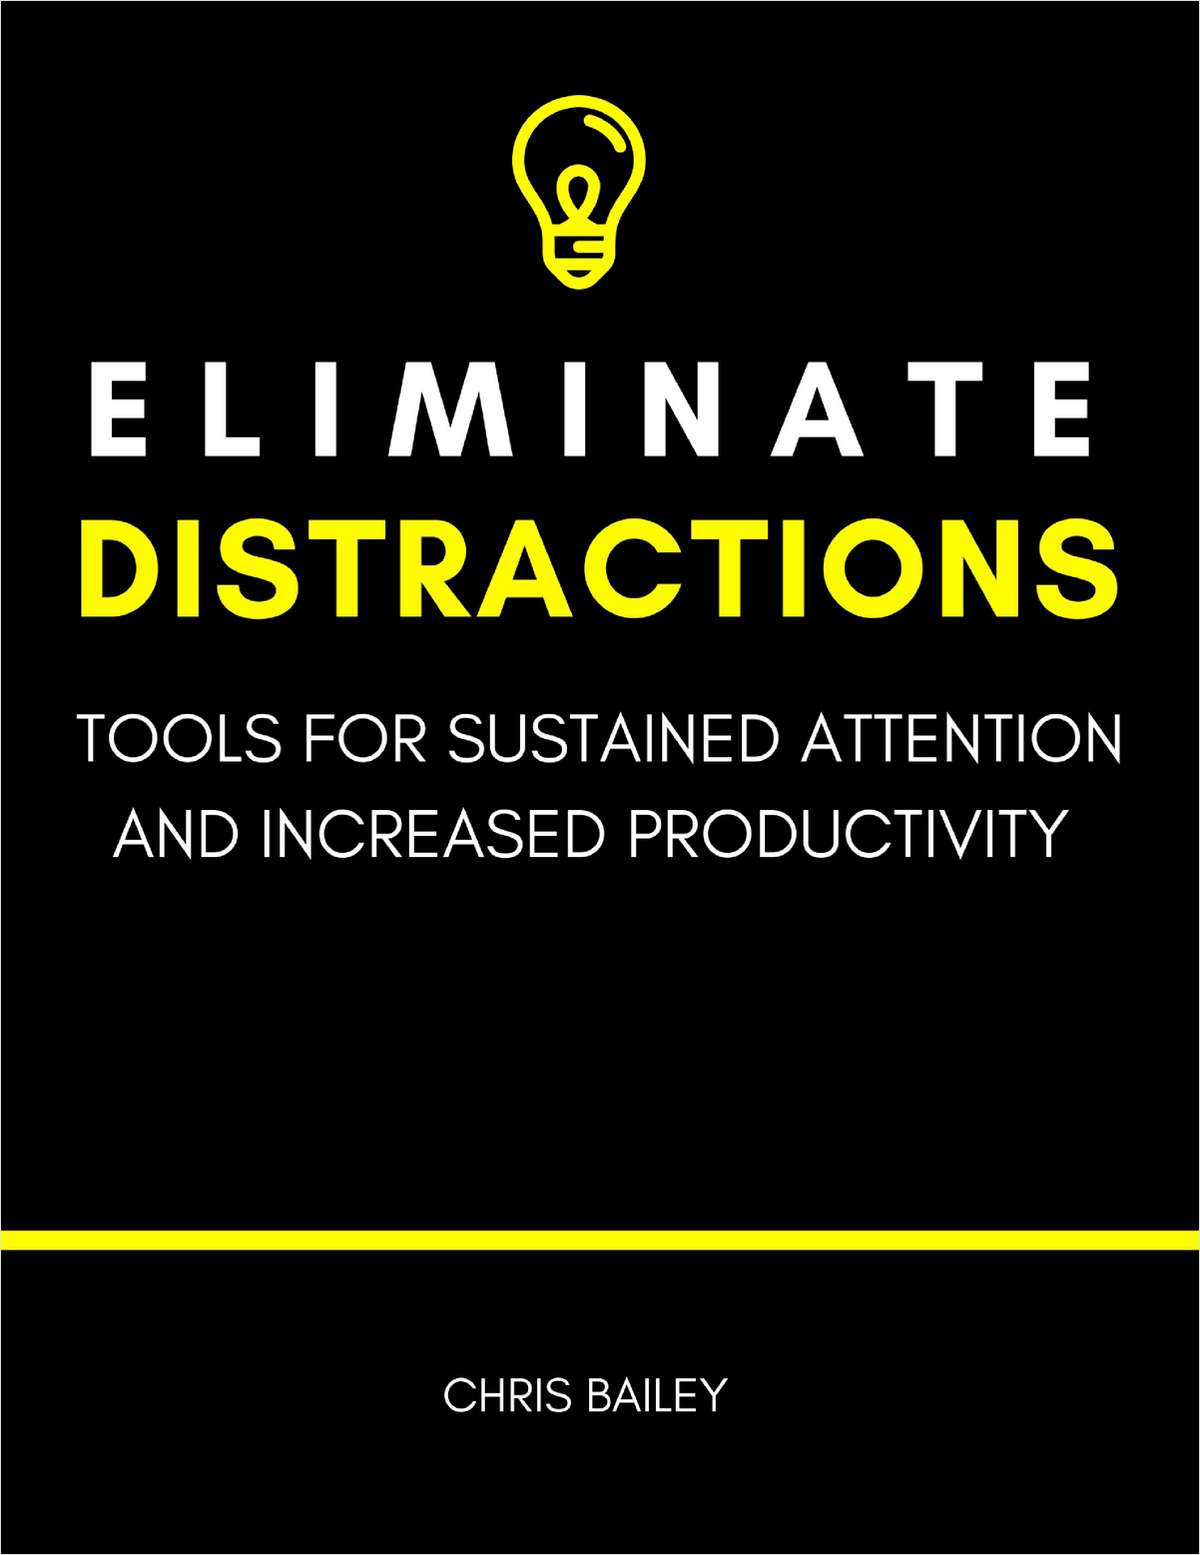 Eliminate Distractions - Tools for Sustained Attention and Increased Productivity